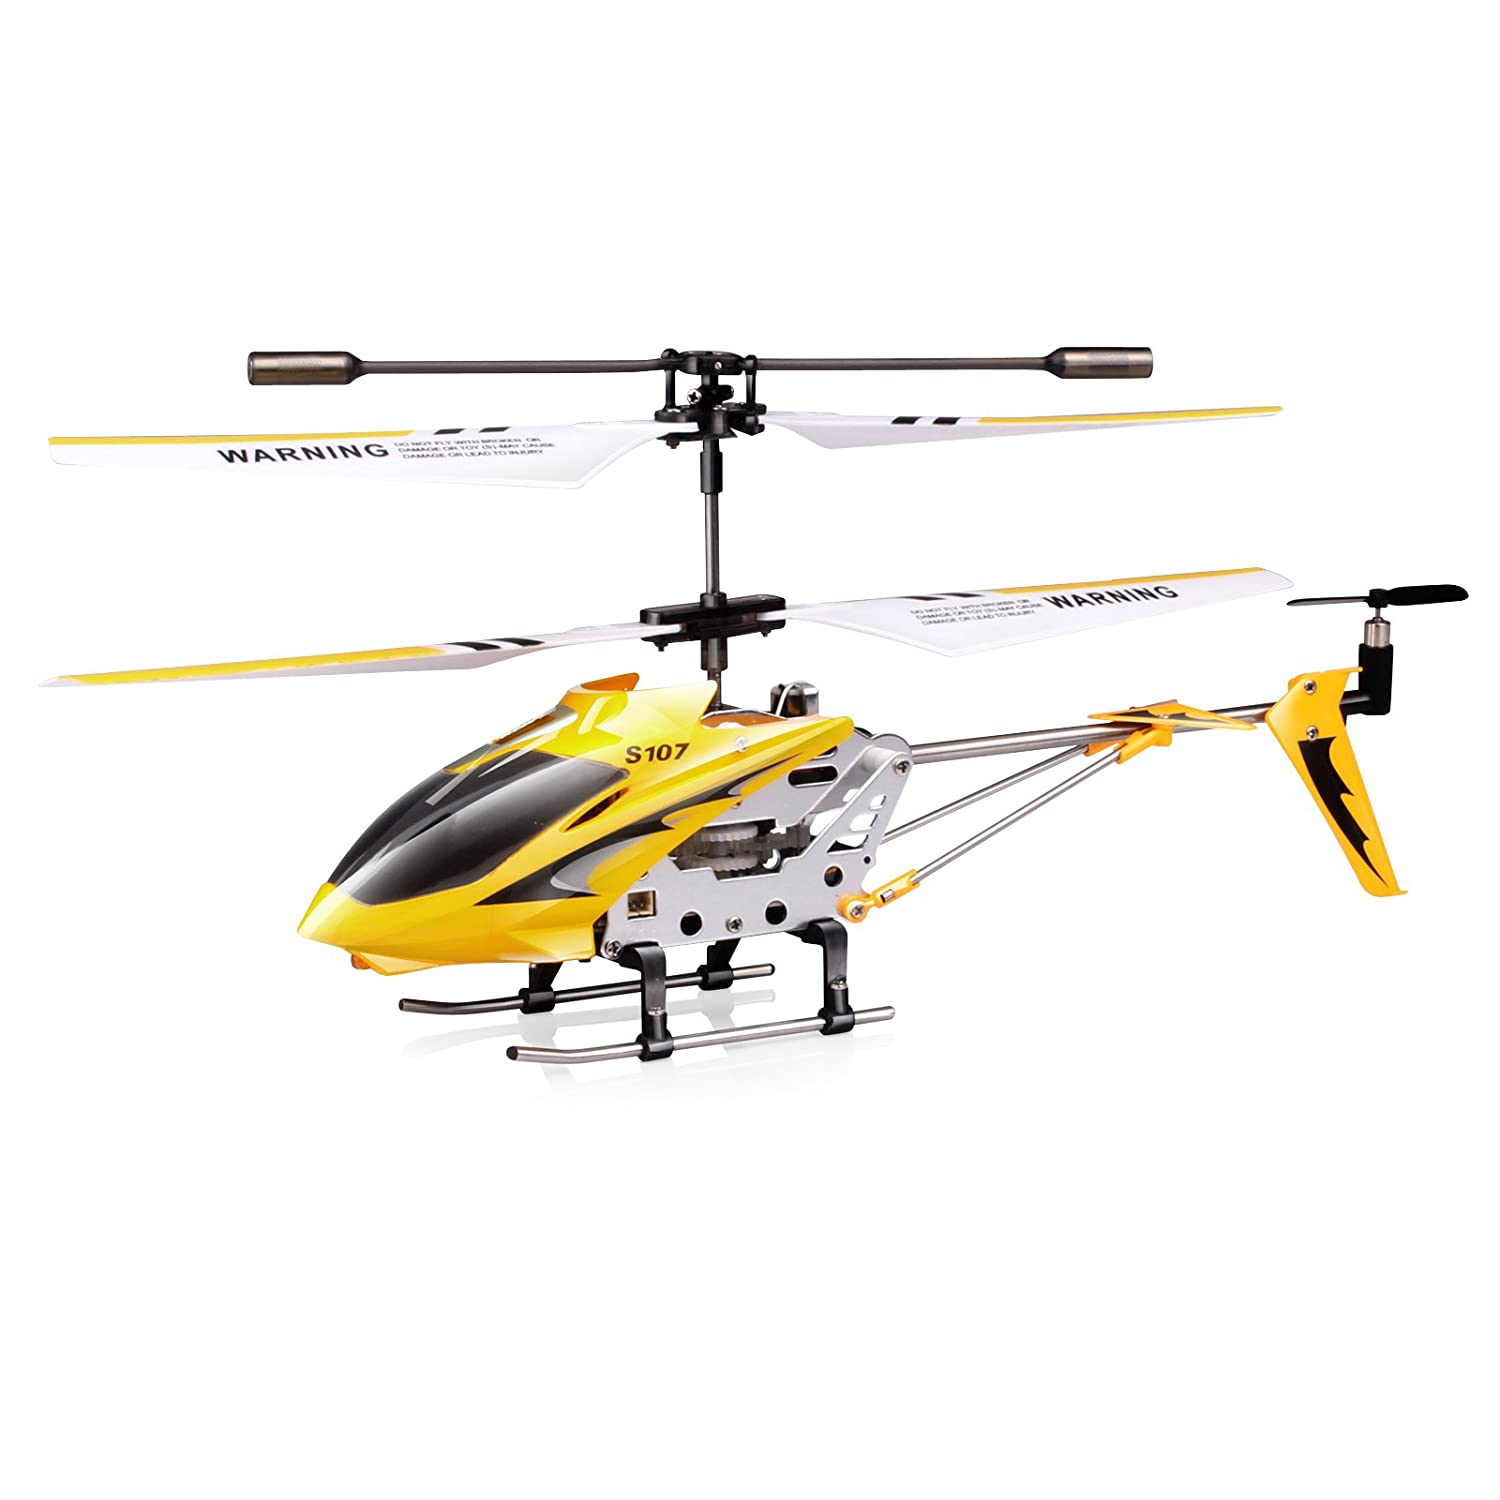 Cool Toy Helicopters : Best remote control helicopters for kids